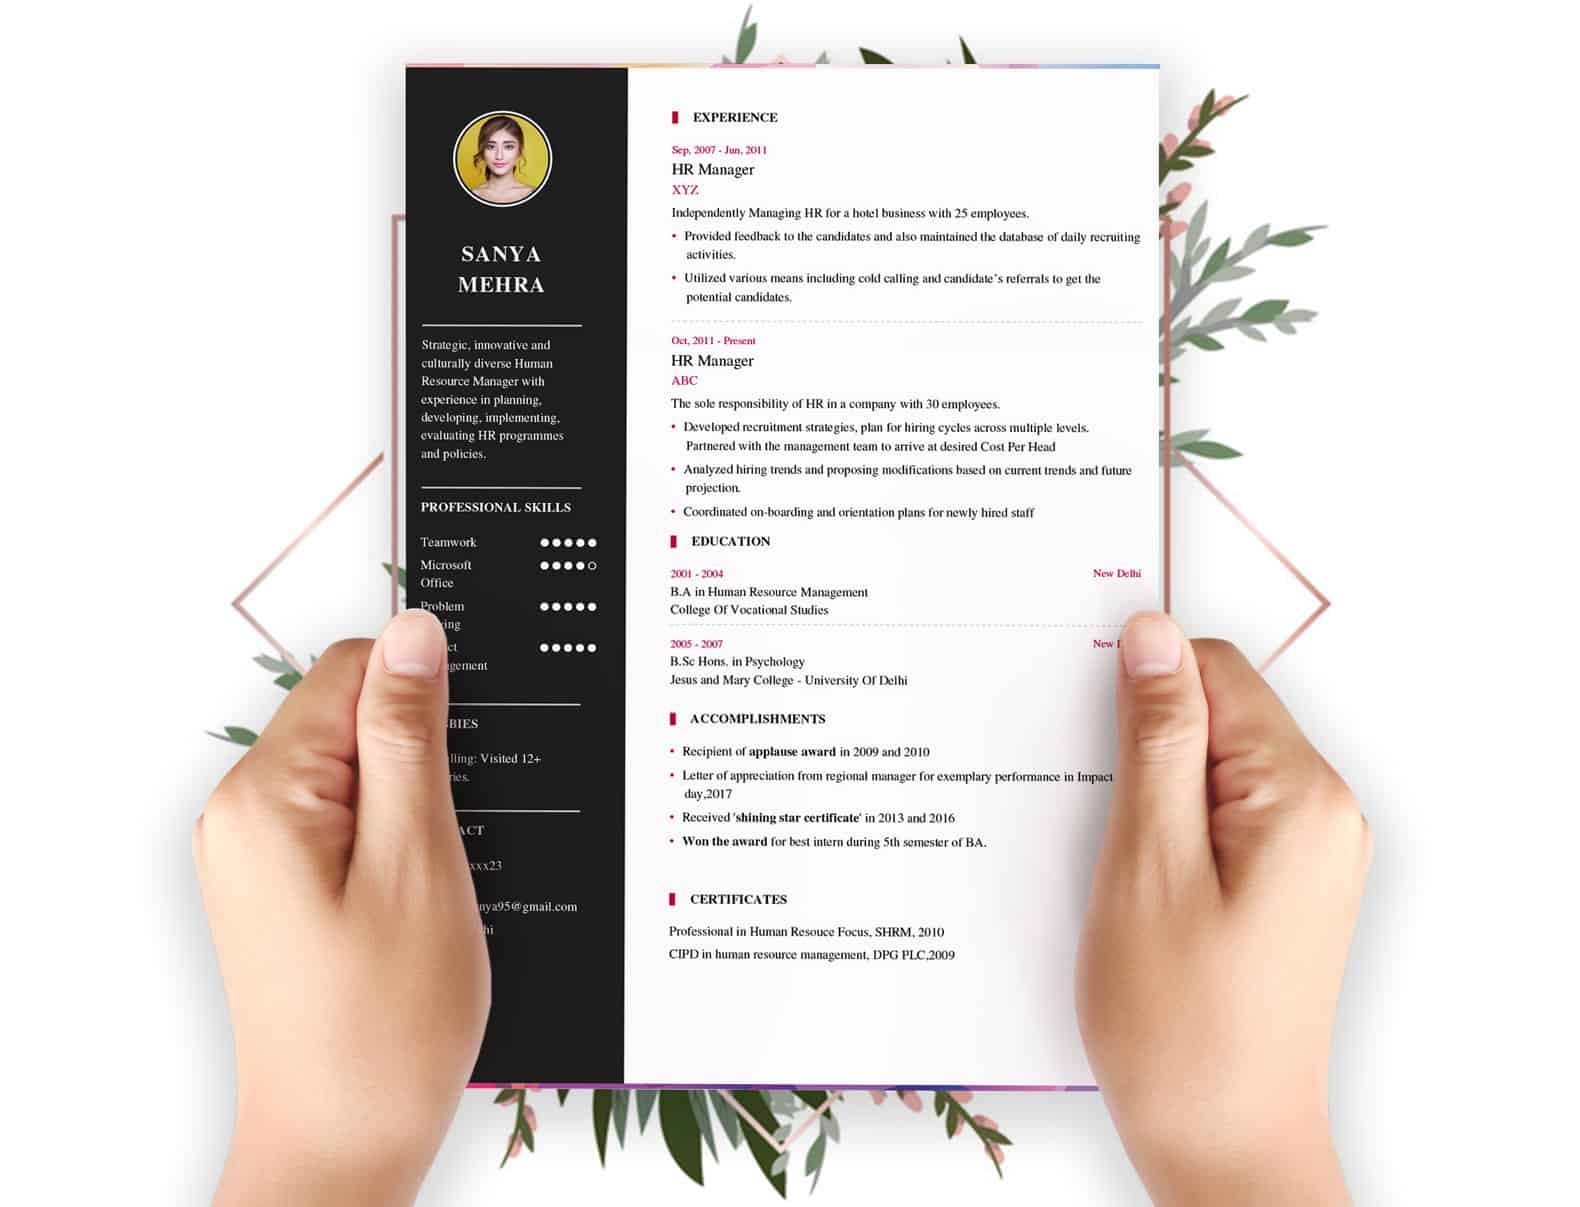 resume builder my format free and job board maker for freshers template general objective Resume Online Resume Maker Free For Freshers